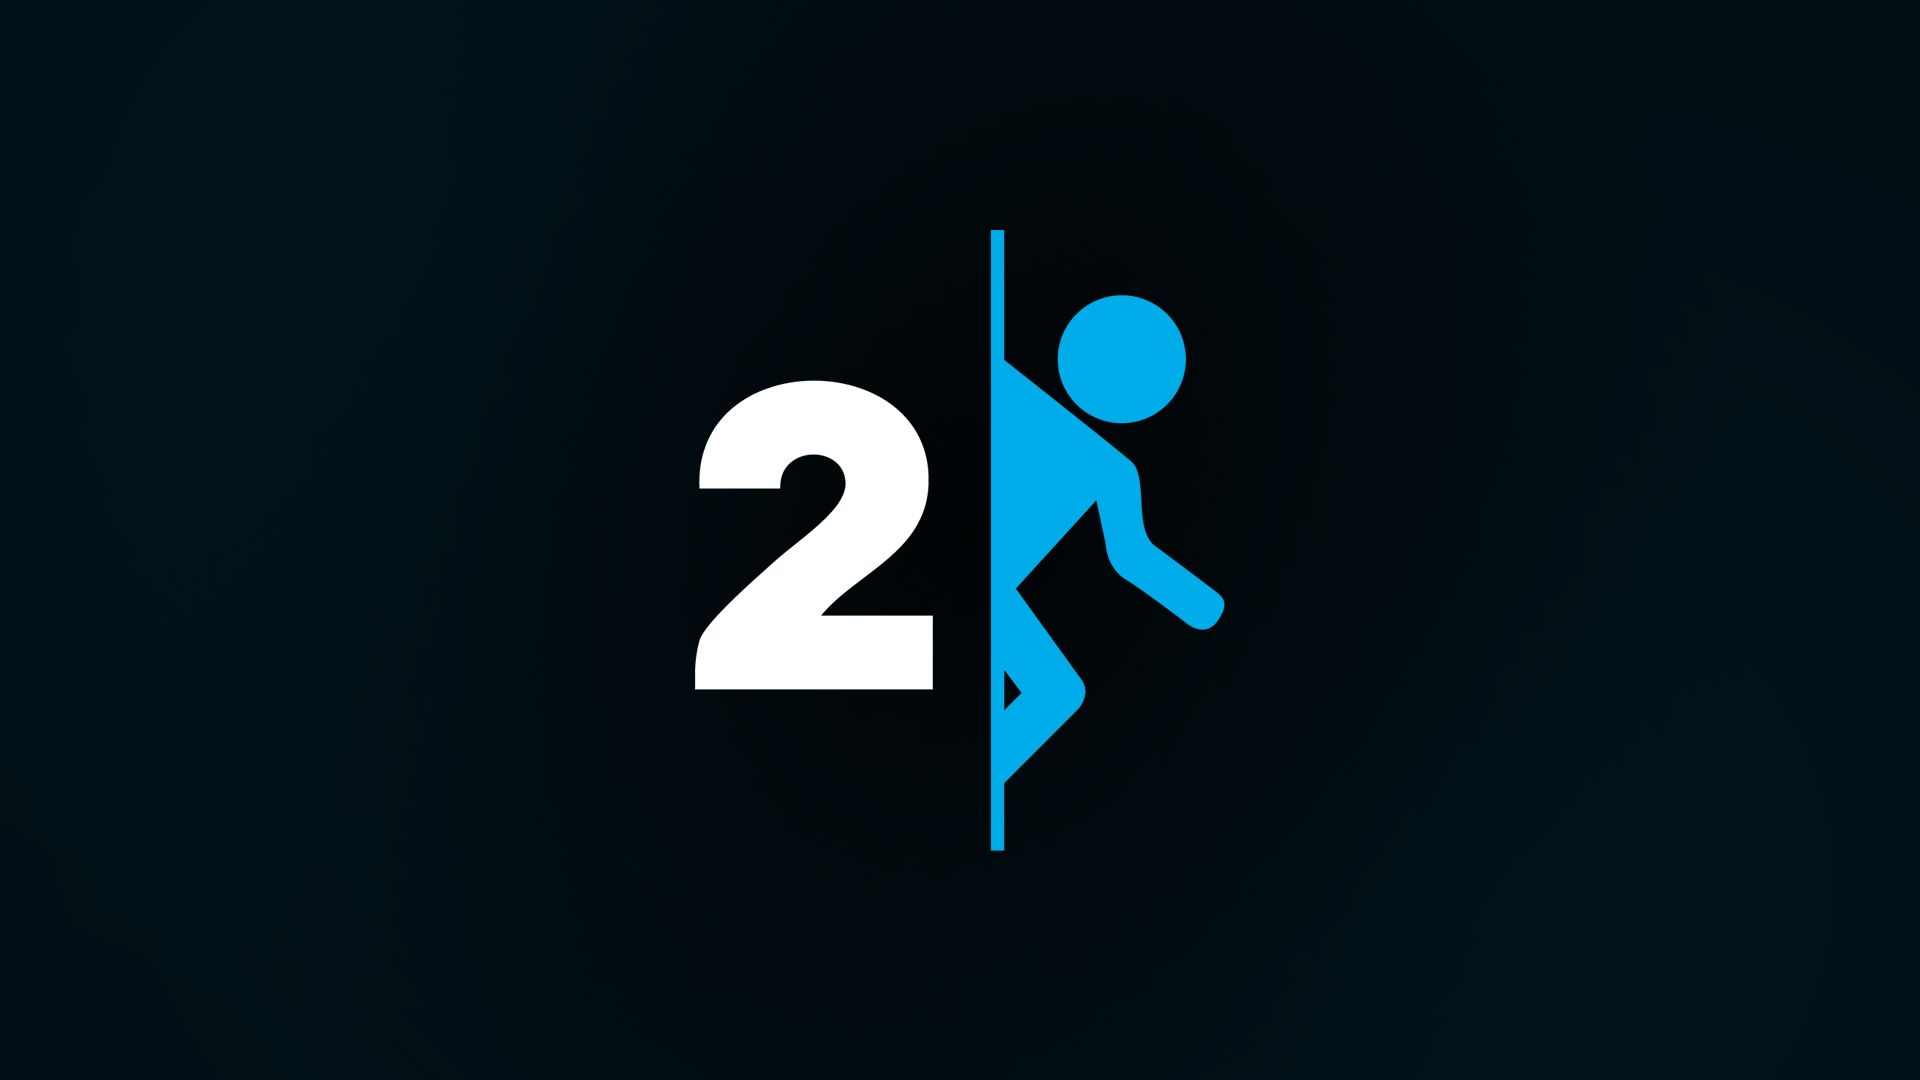 Awesome Portal 2 Wallpapers